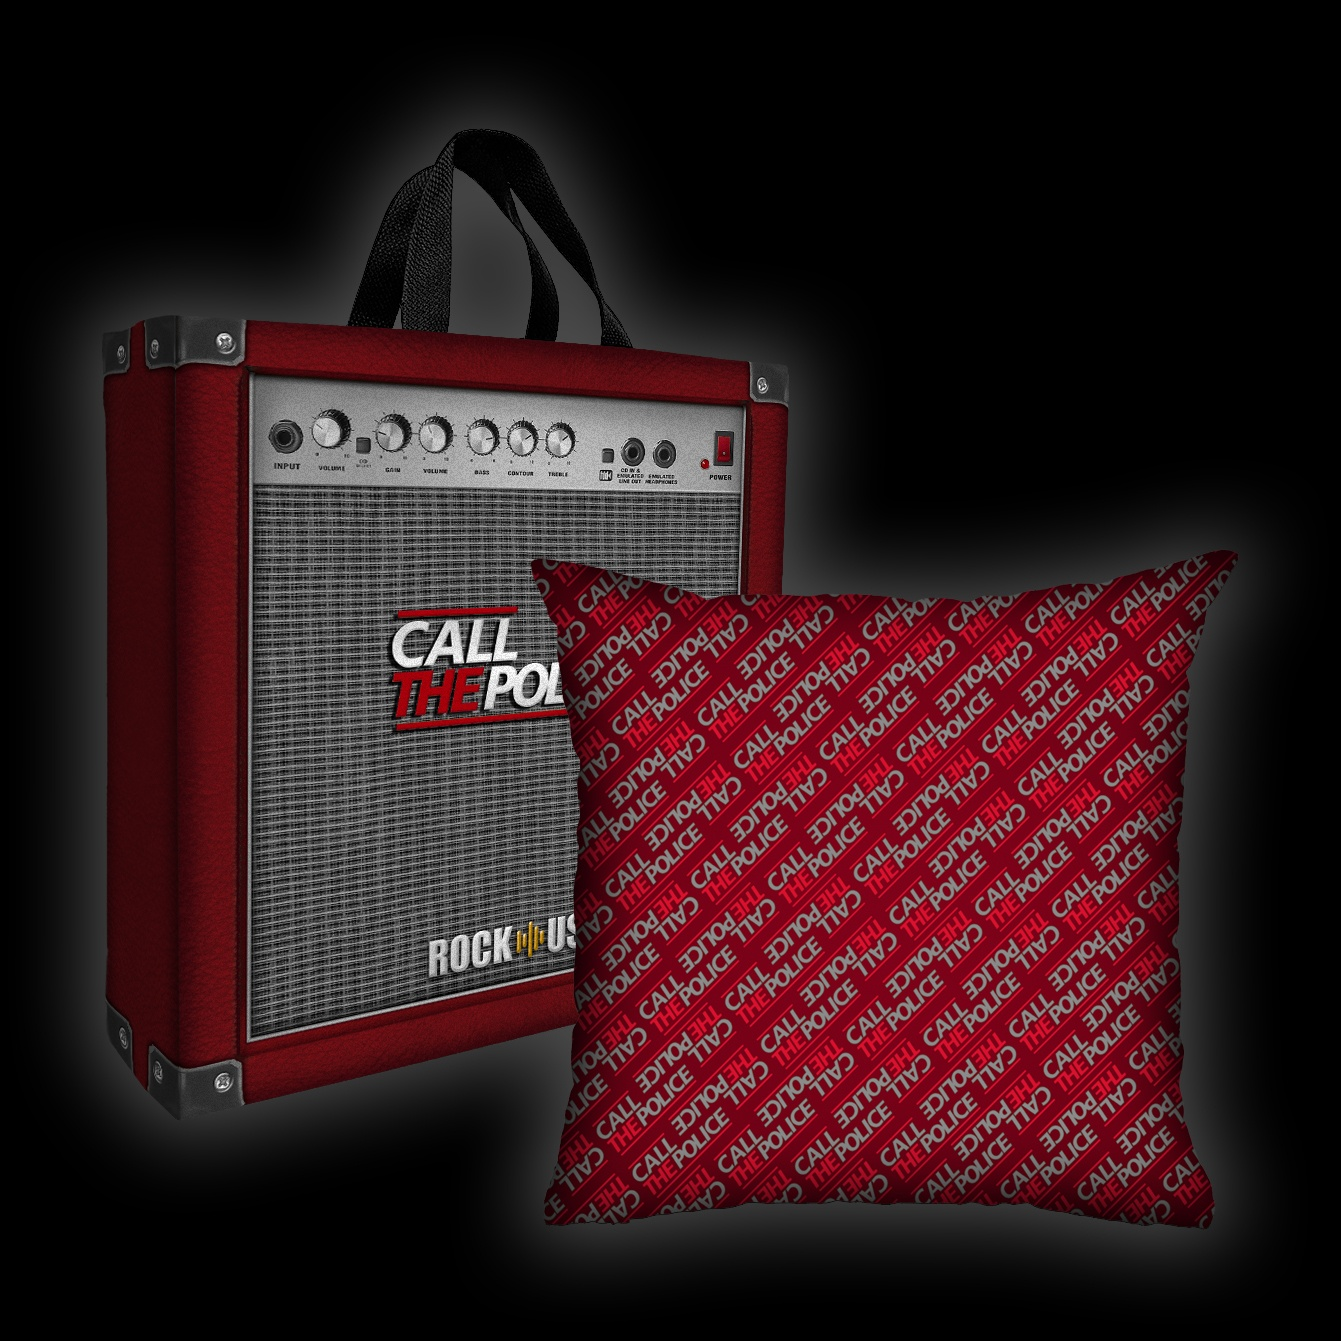 Kit Almofada + Sacola Call the Police - Wall (Red)